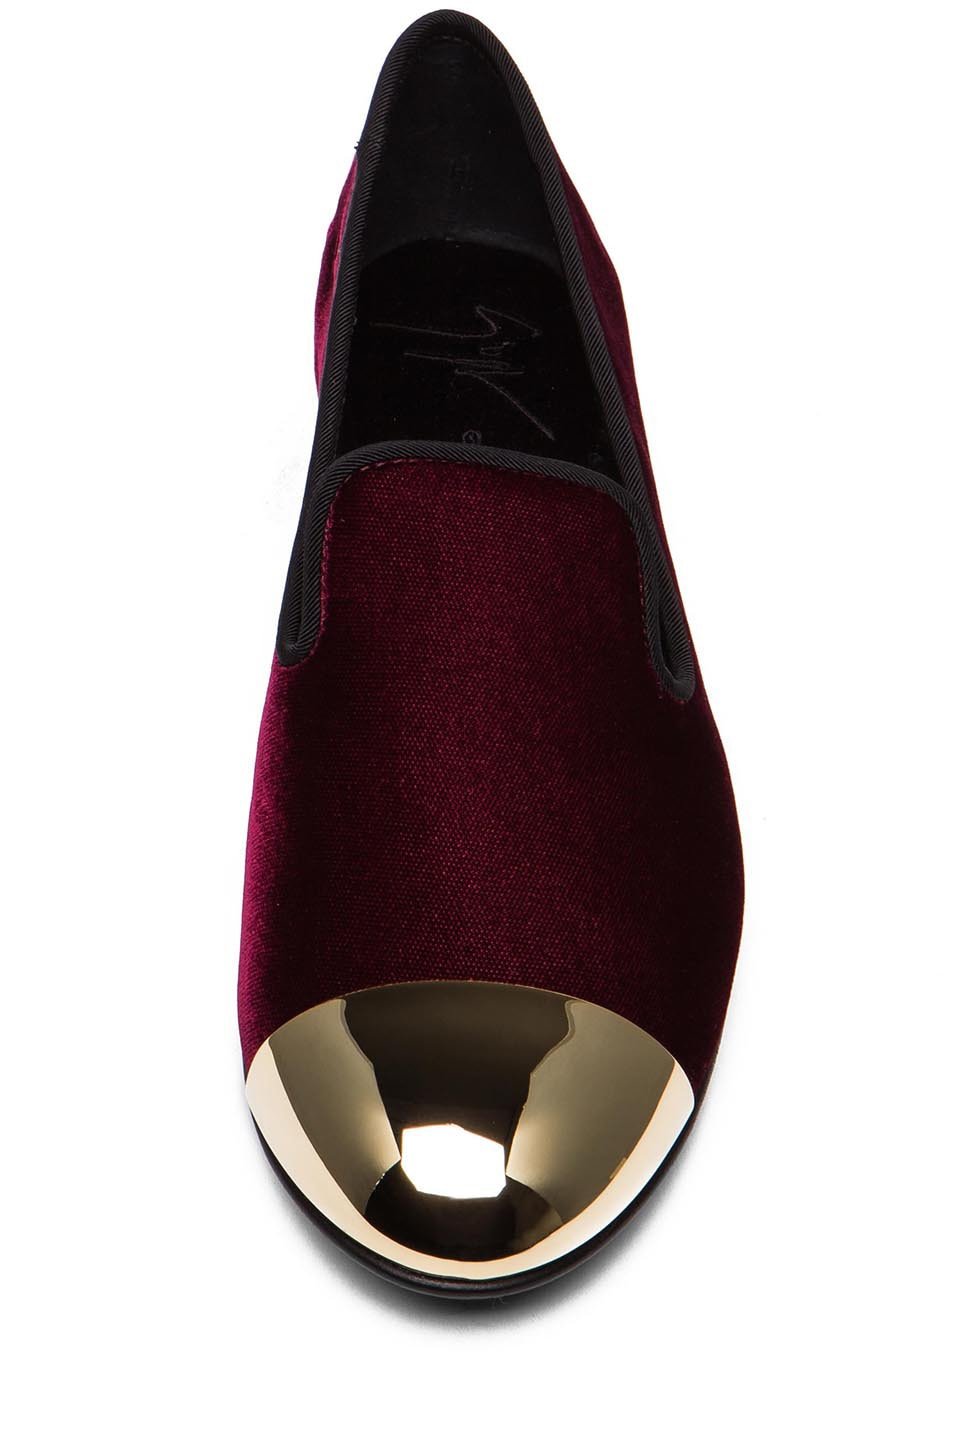 Image 4 of Giuseppe Zanotti Velvet Gold Tipped Flat in Burgundy Velvet